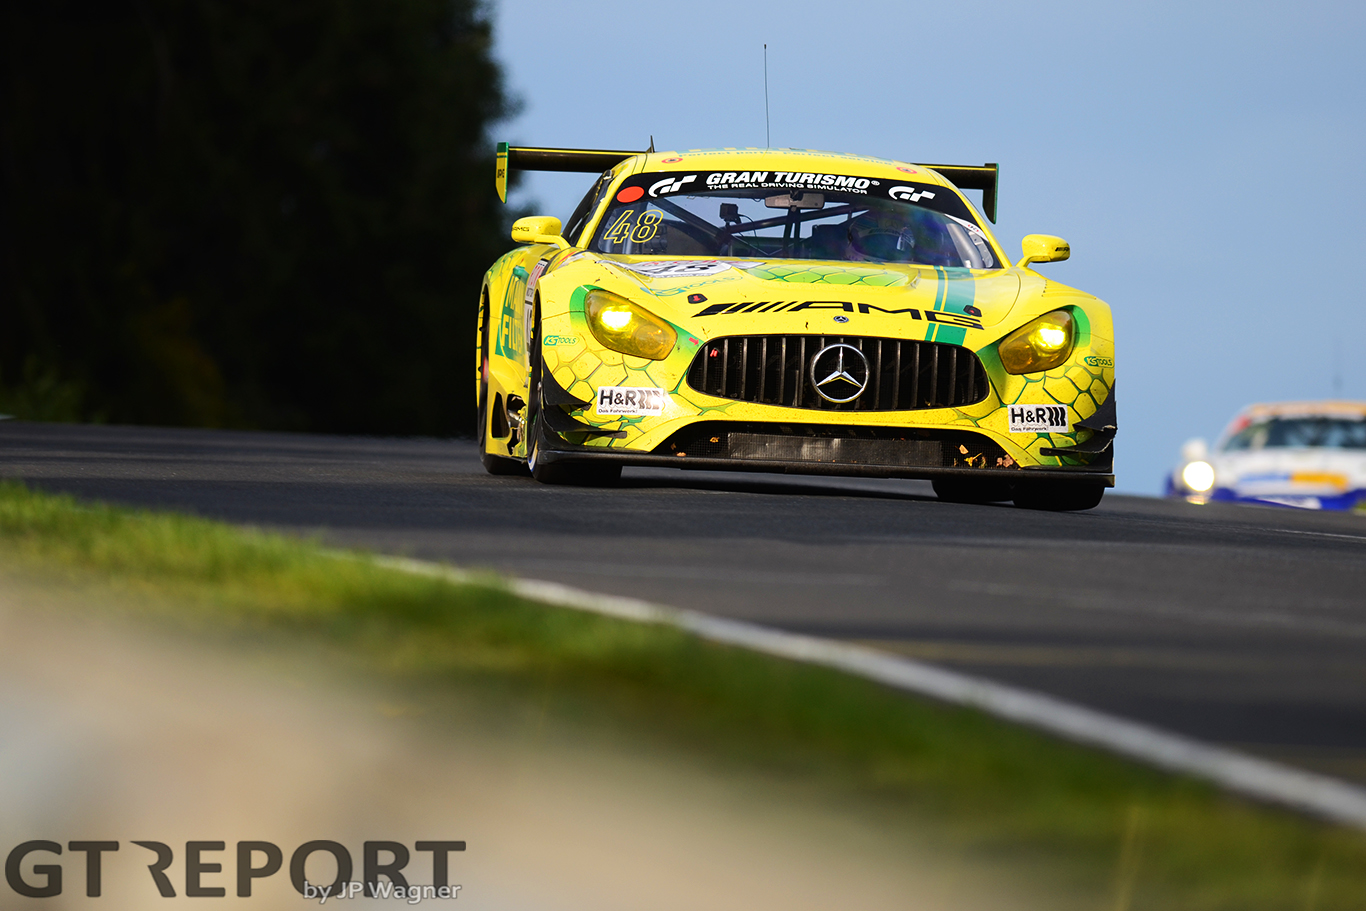 VLN8 race report: HTP Motorsport storms to victory